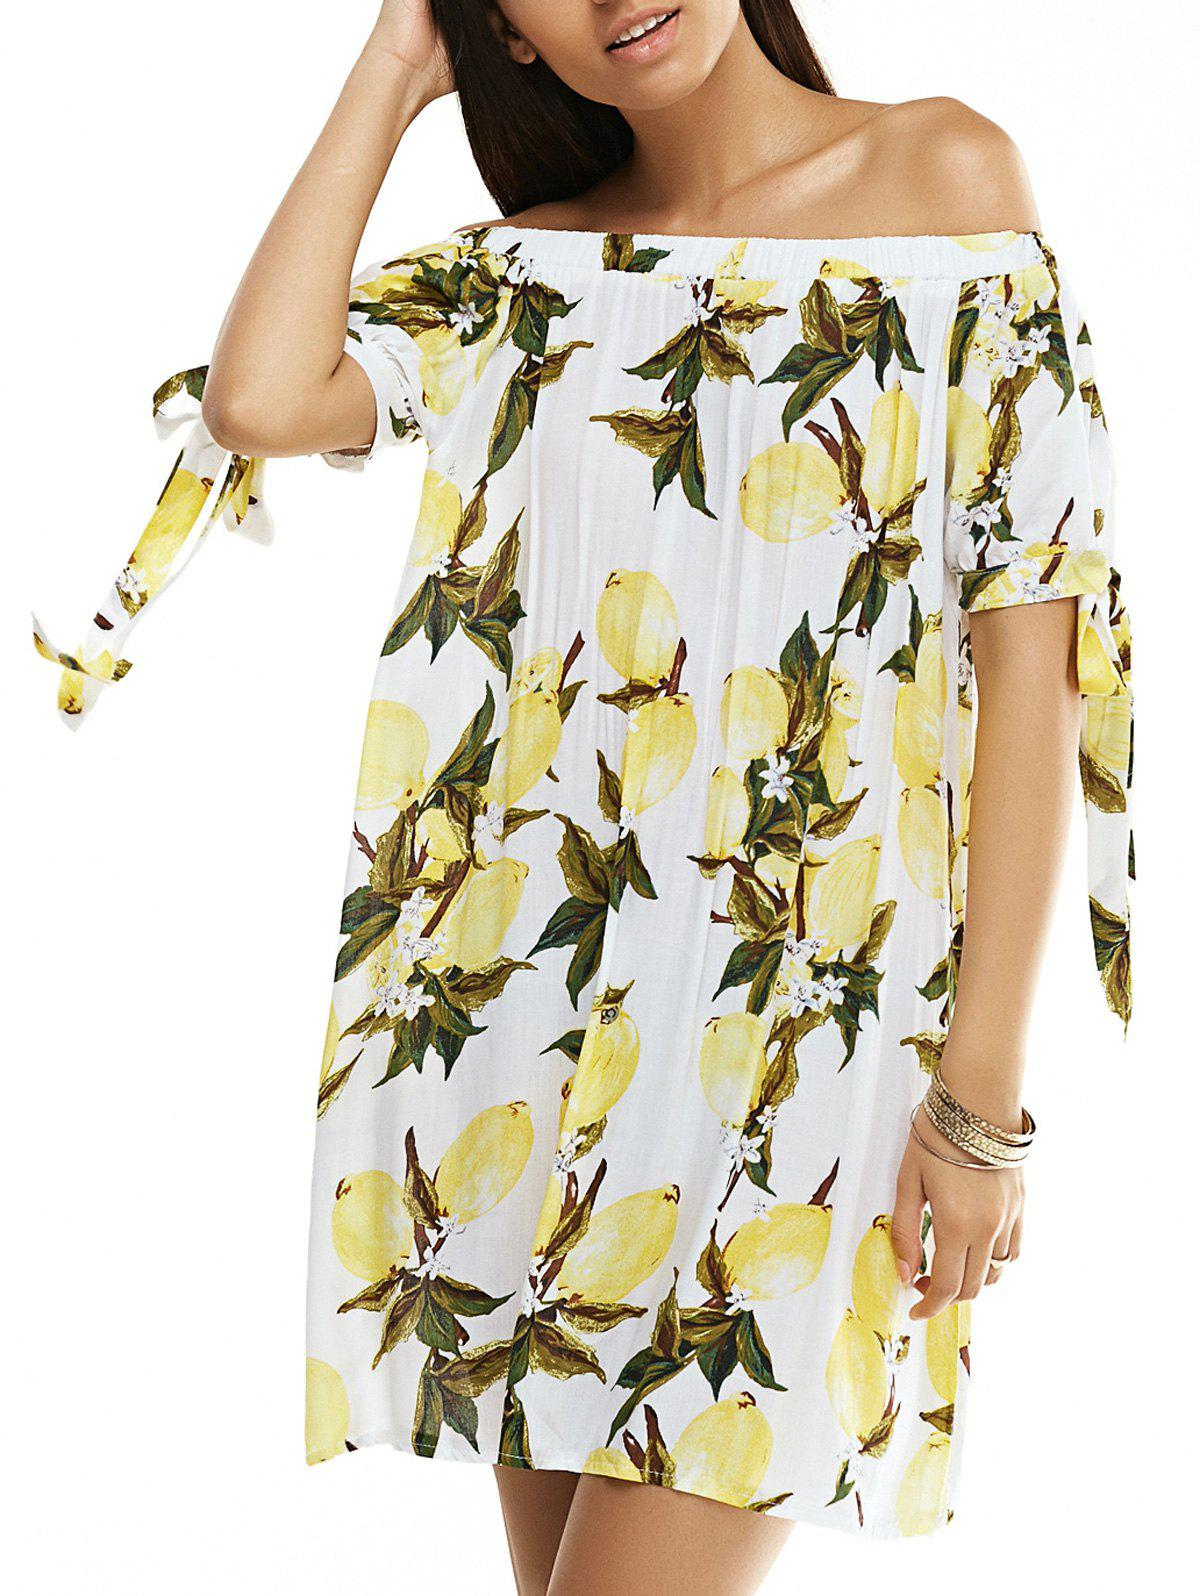 Off The Shoulder Lemon Printed Dress - WHITE/YELLOW L